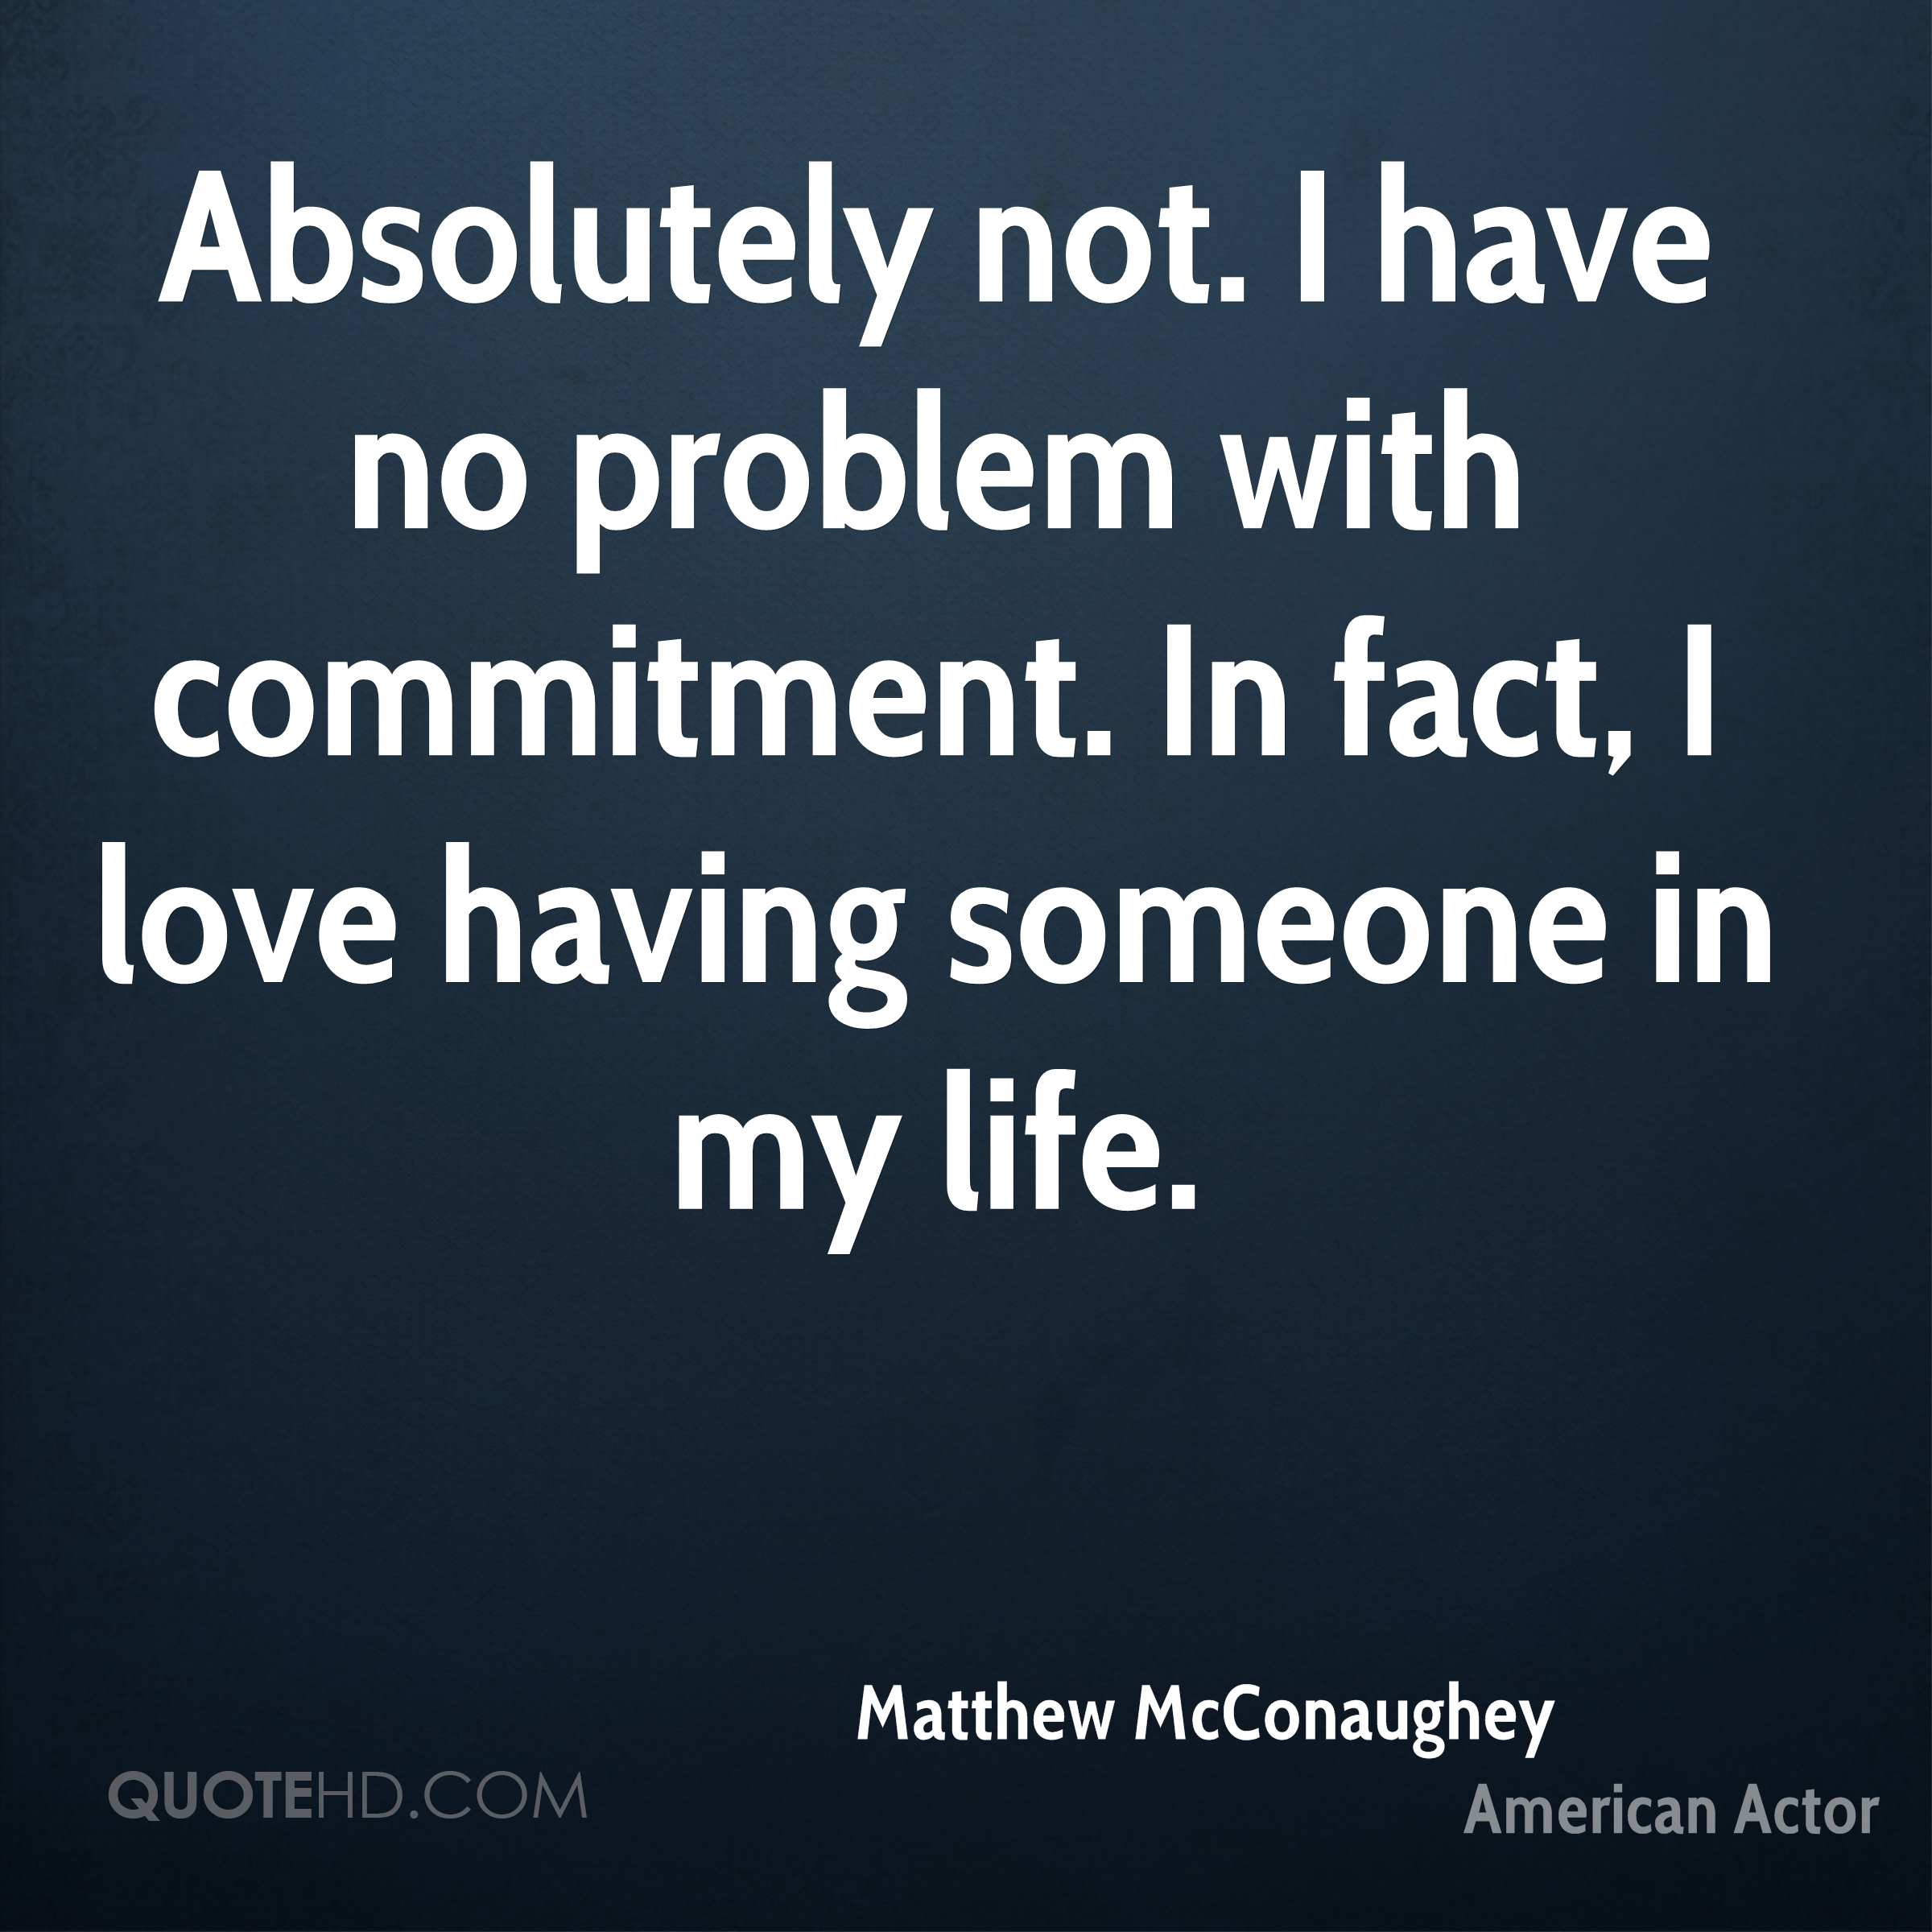 Absolutely not. I have no problem with commitment. In fact, I love having someone in my life.